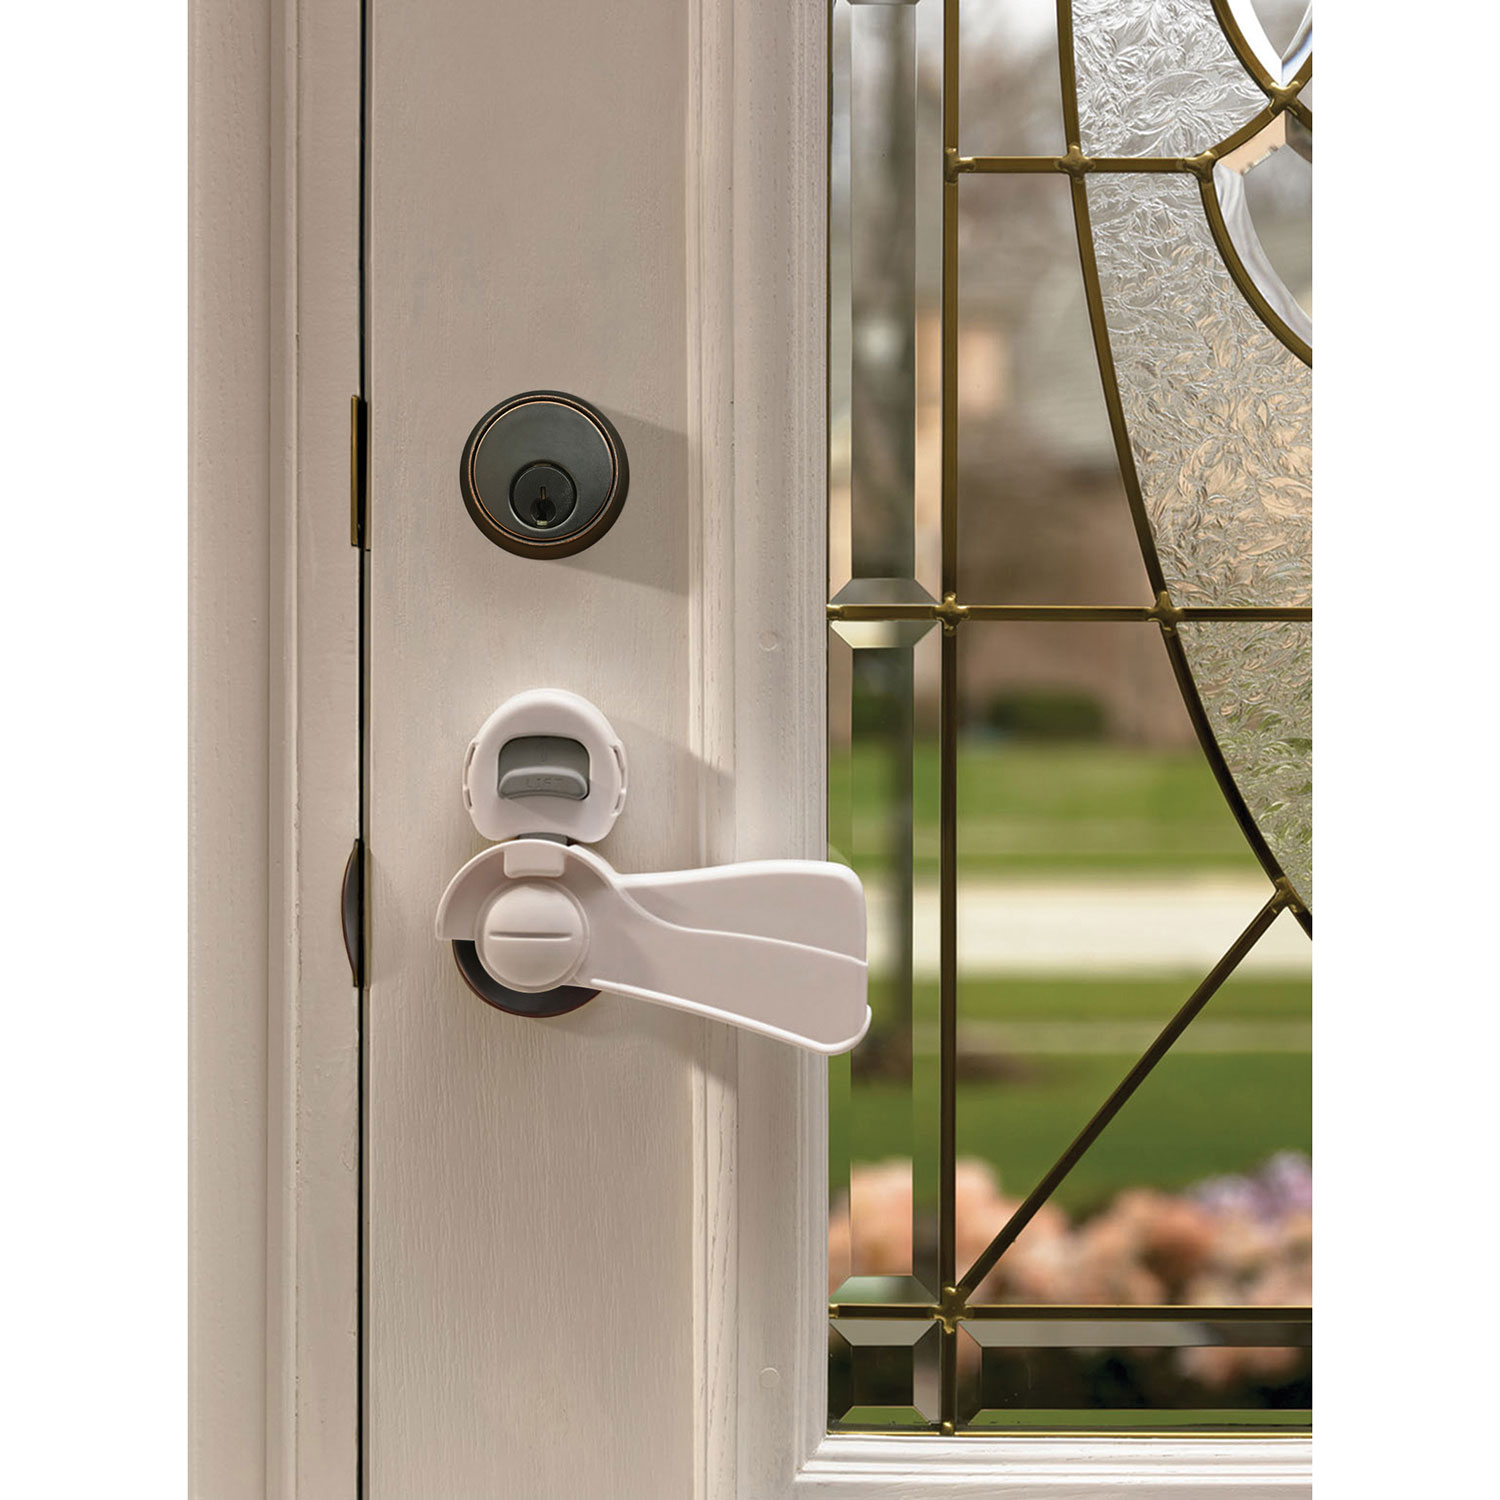 Child Safety Locks Latches & Plugs Best Buy Canada